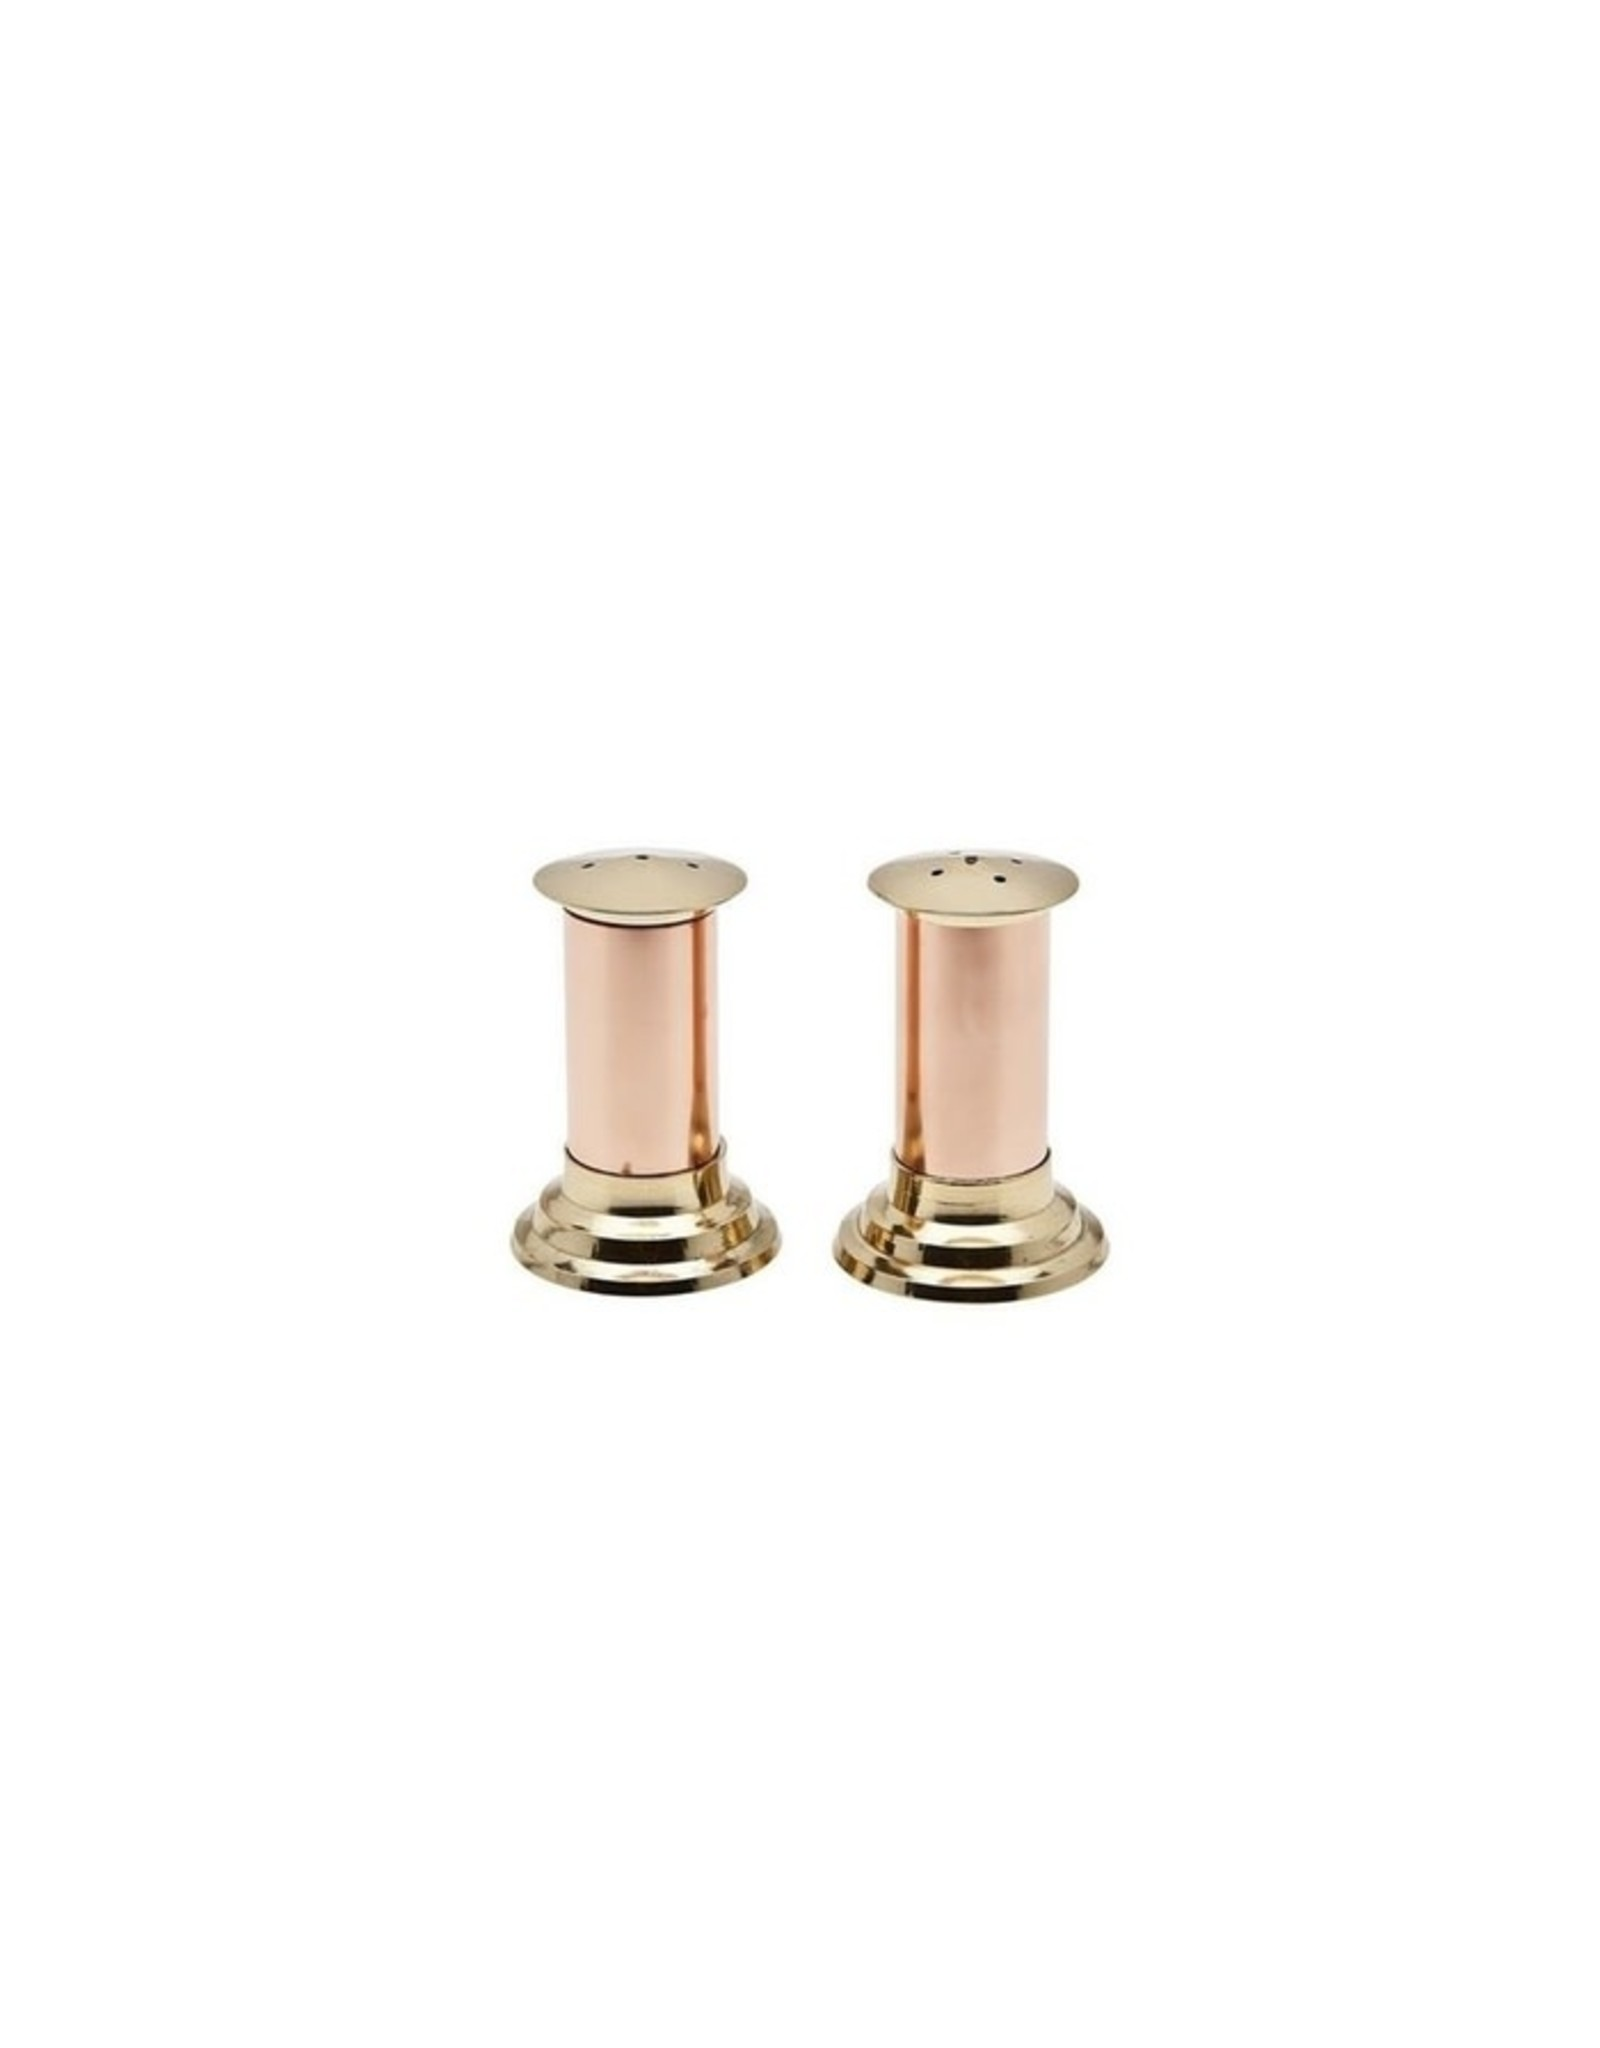 70011 Hearth Copper/ Brass Salt & Pepper Set